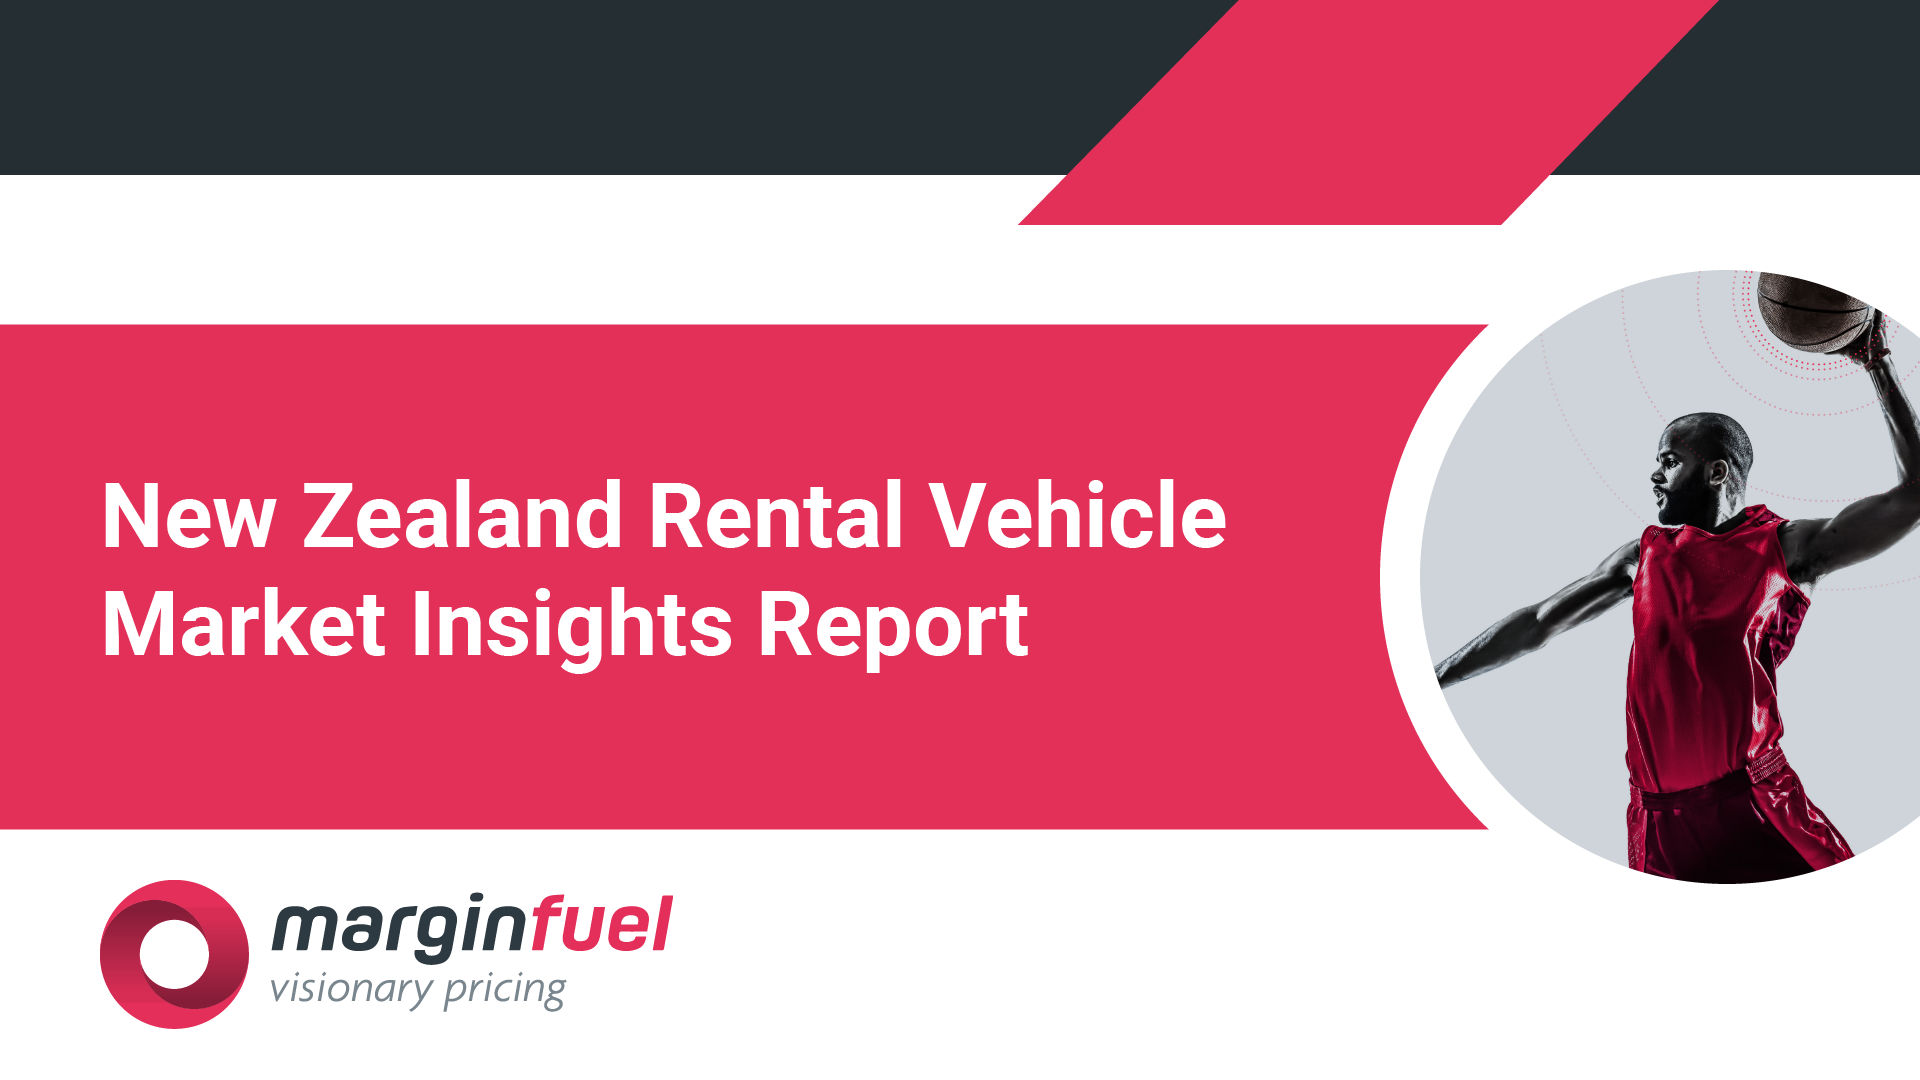 New Zealand Rental Vehicle Market Insights Report - January 2019